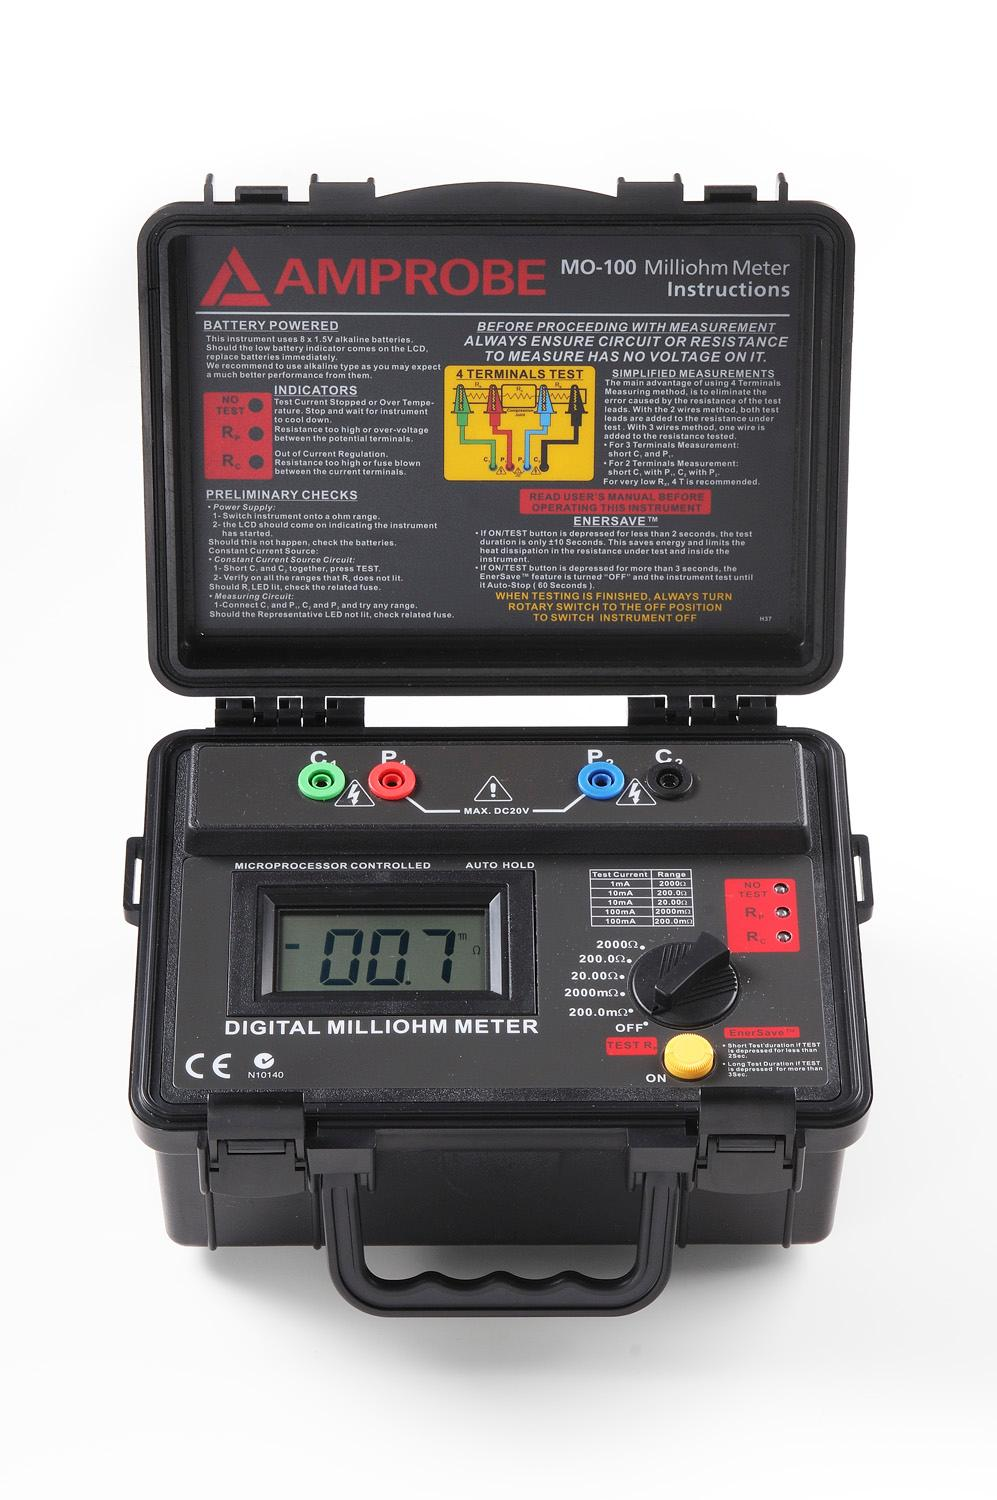 Amprobe Mo 100 Milliohm Meter Multi Testers Home Digital Multimeter From Reliable Circuit Suppliers On The Manufacturer